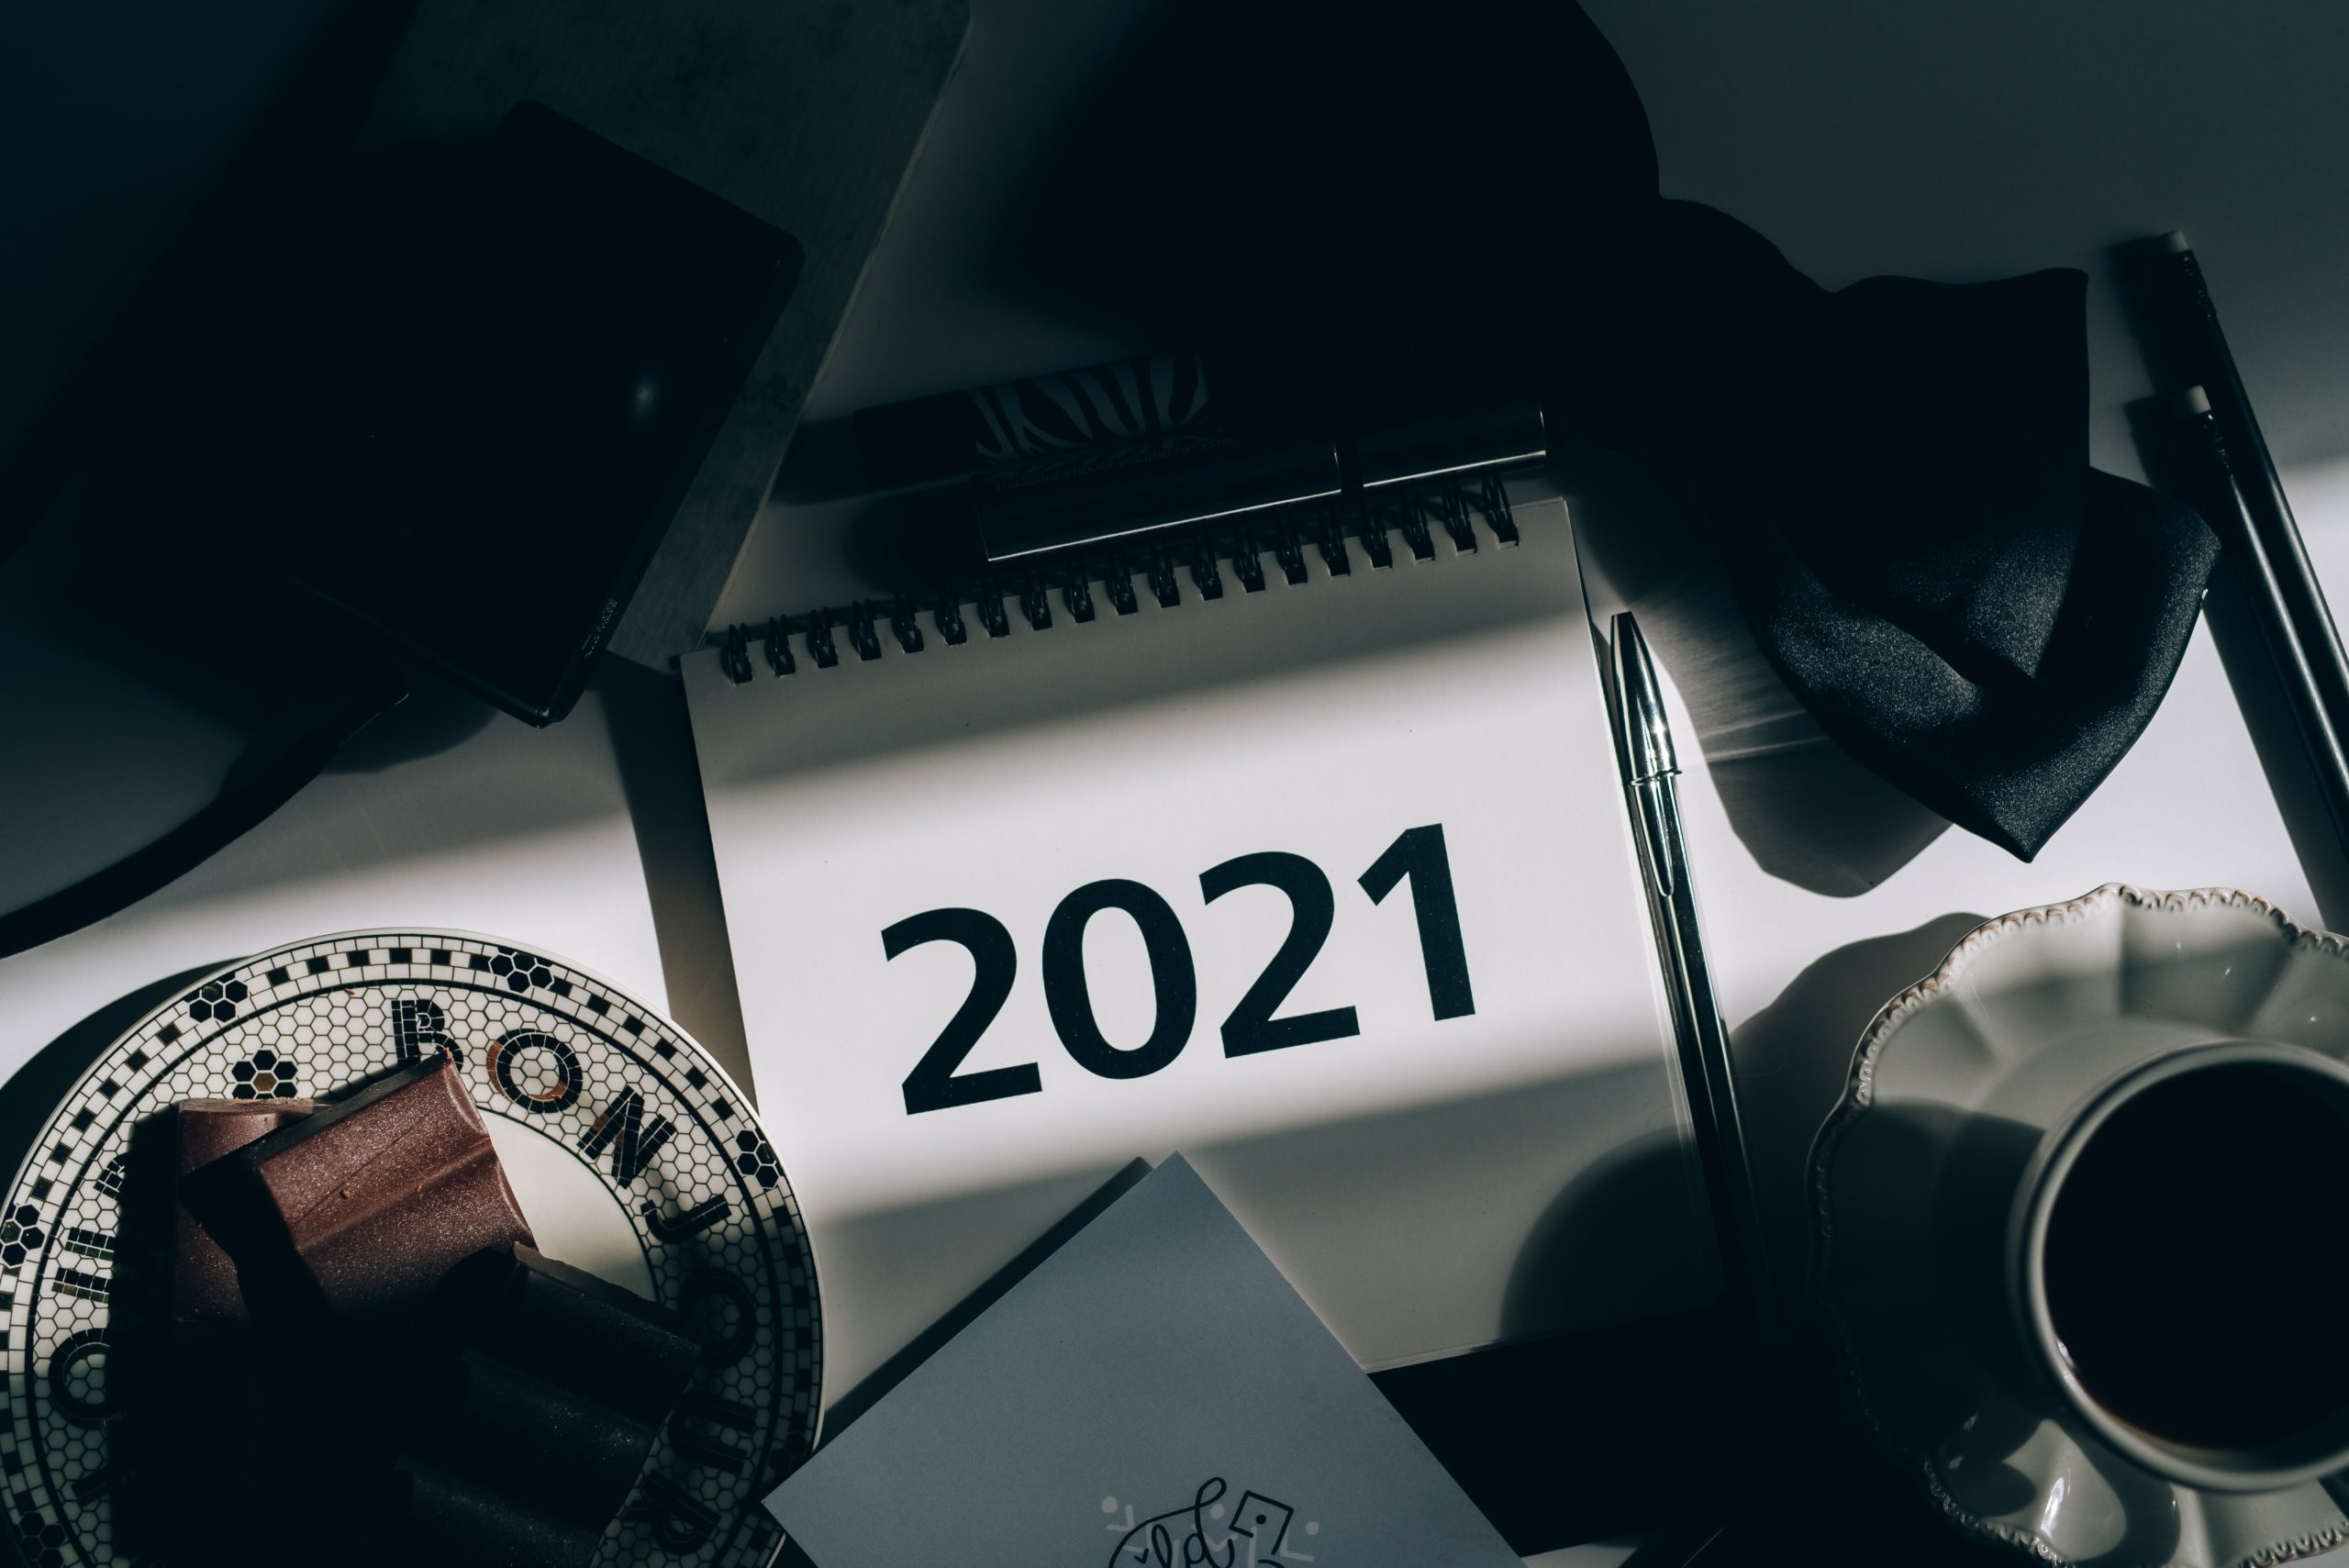 The number 2021 on a binder on a desk, highlighting the new year